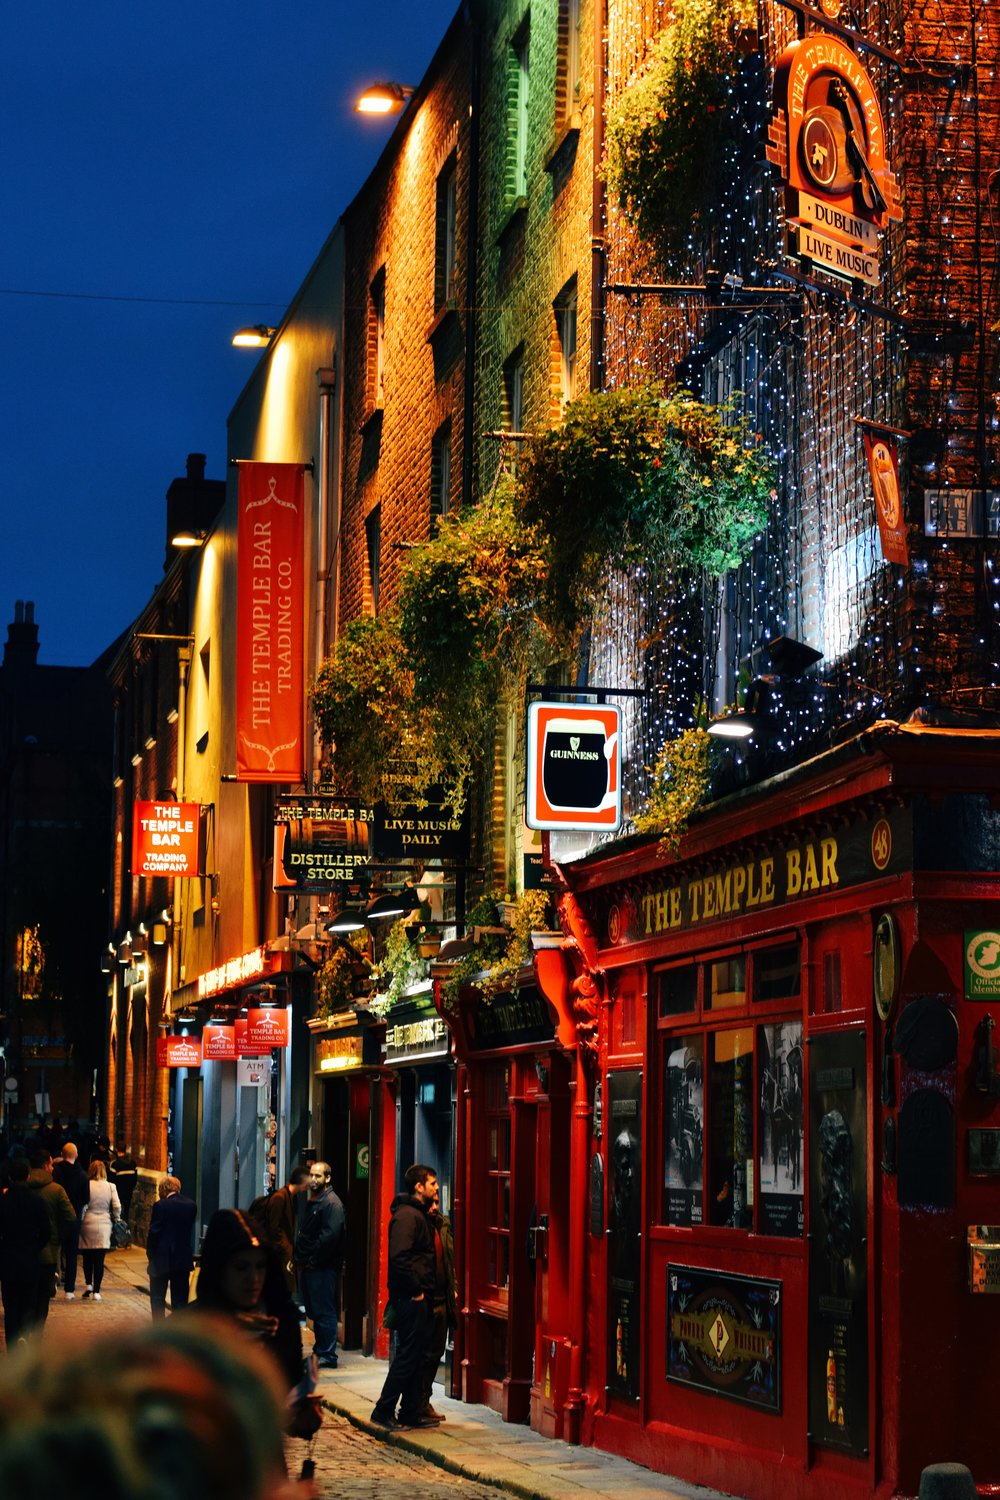 The Temple Bar (Nikon D3300, 50mm, f/4, 1/60 sec, ISO 800 image processed with VSCO E1 preset)